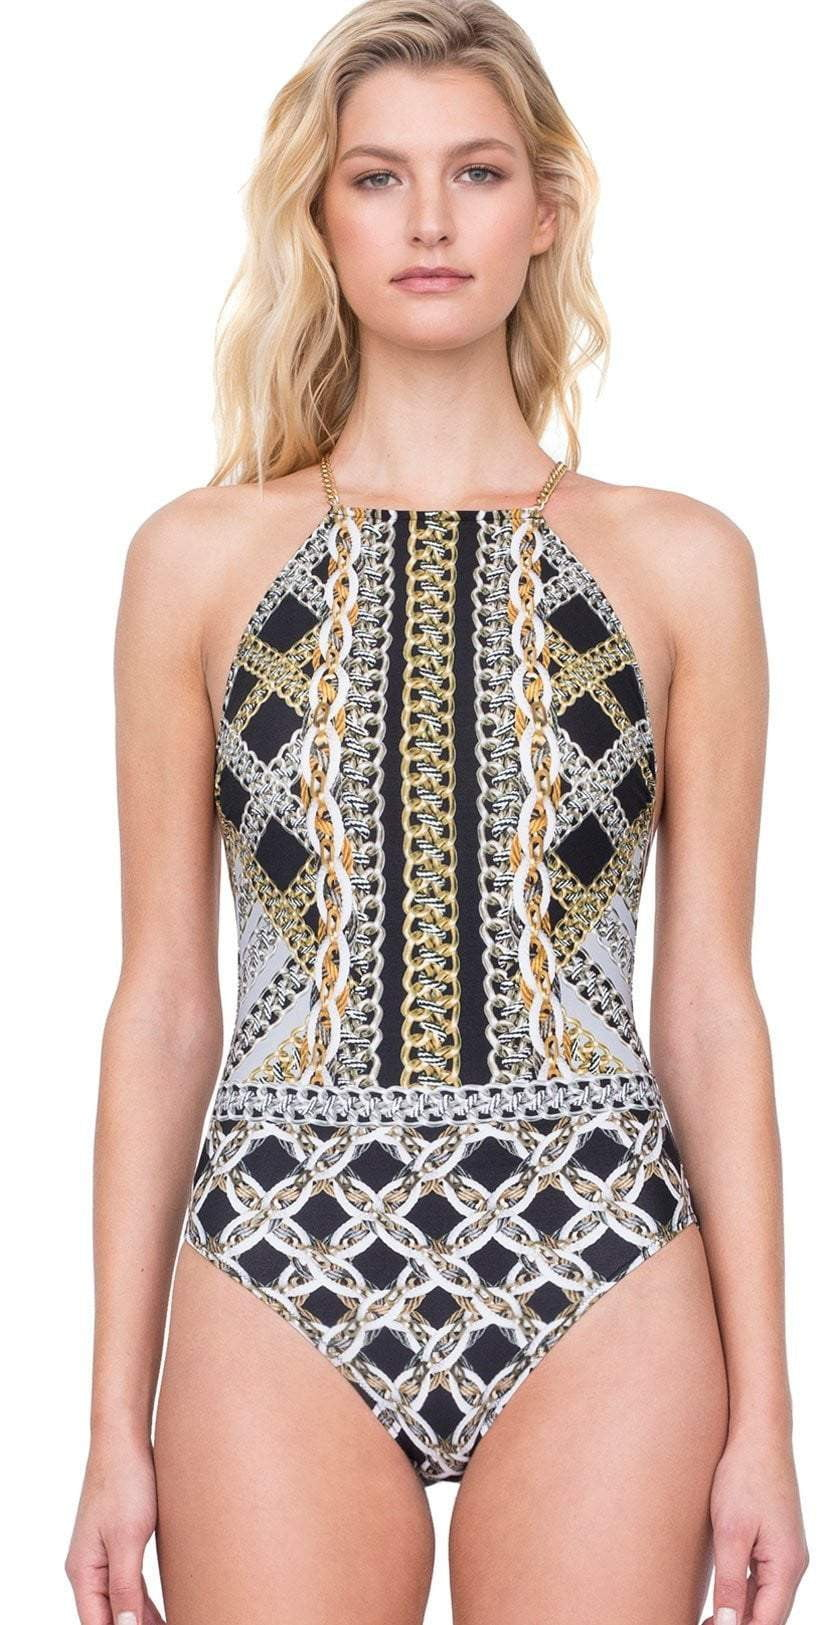 Gottex Chains Of Gold High Neck One Piece Swimsuit 19CG-149-018: